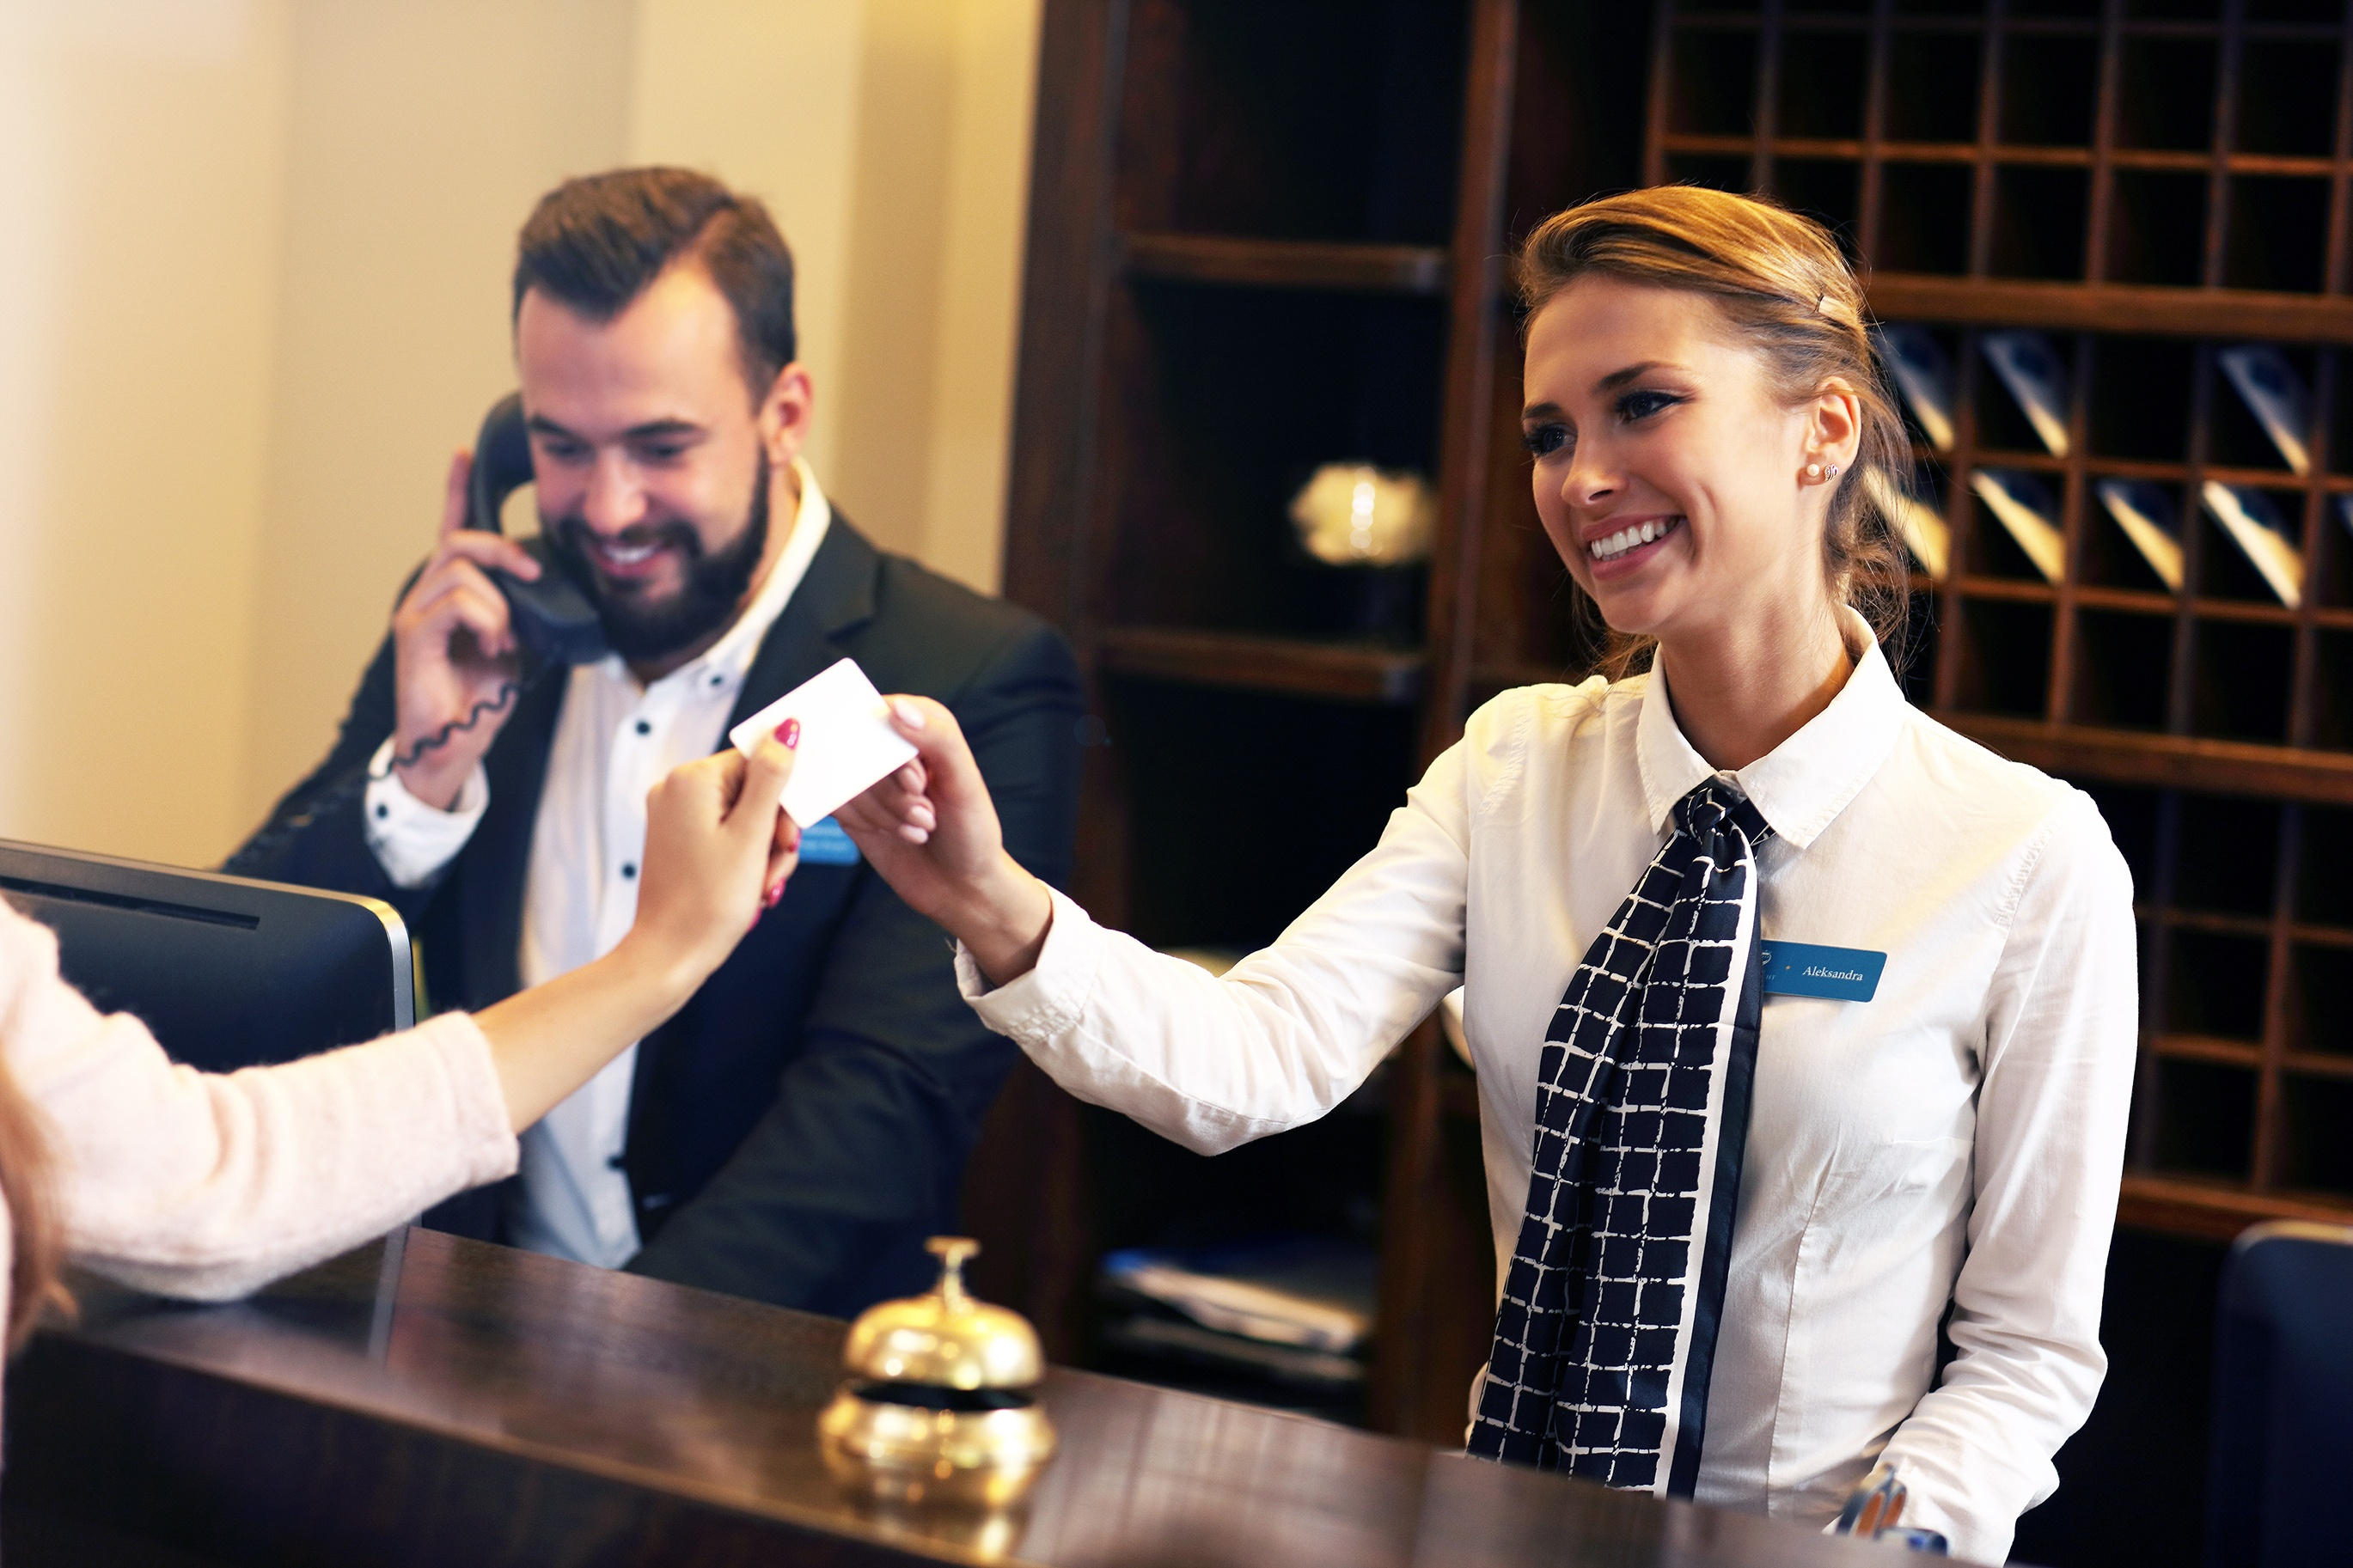 Your Hotel Marketing Should be Authentic | THAT Agency